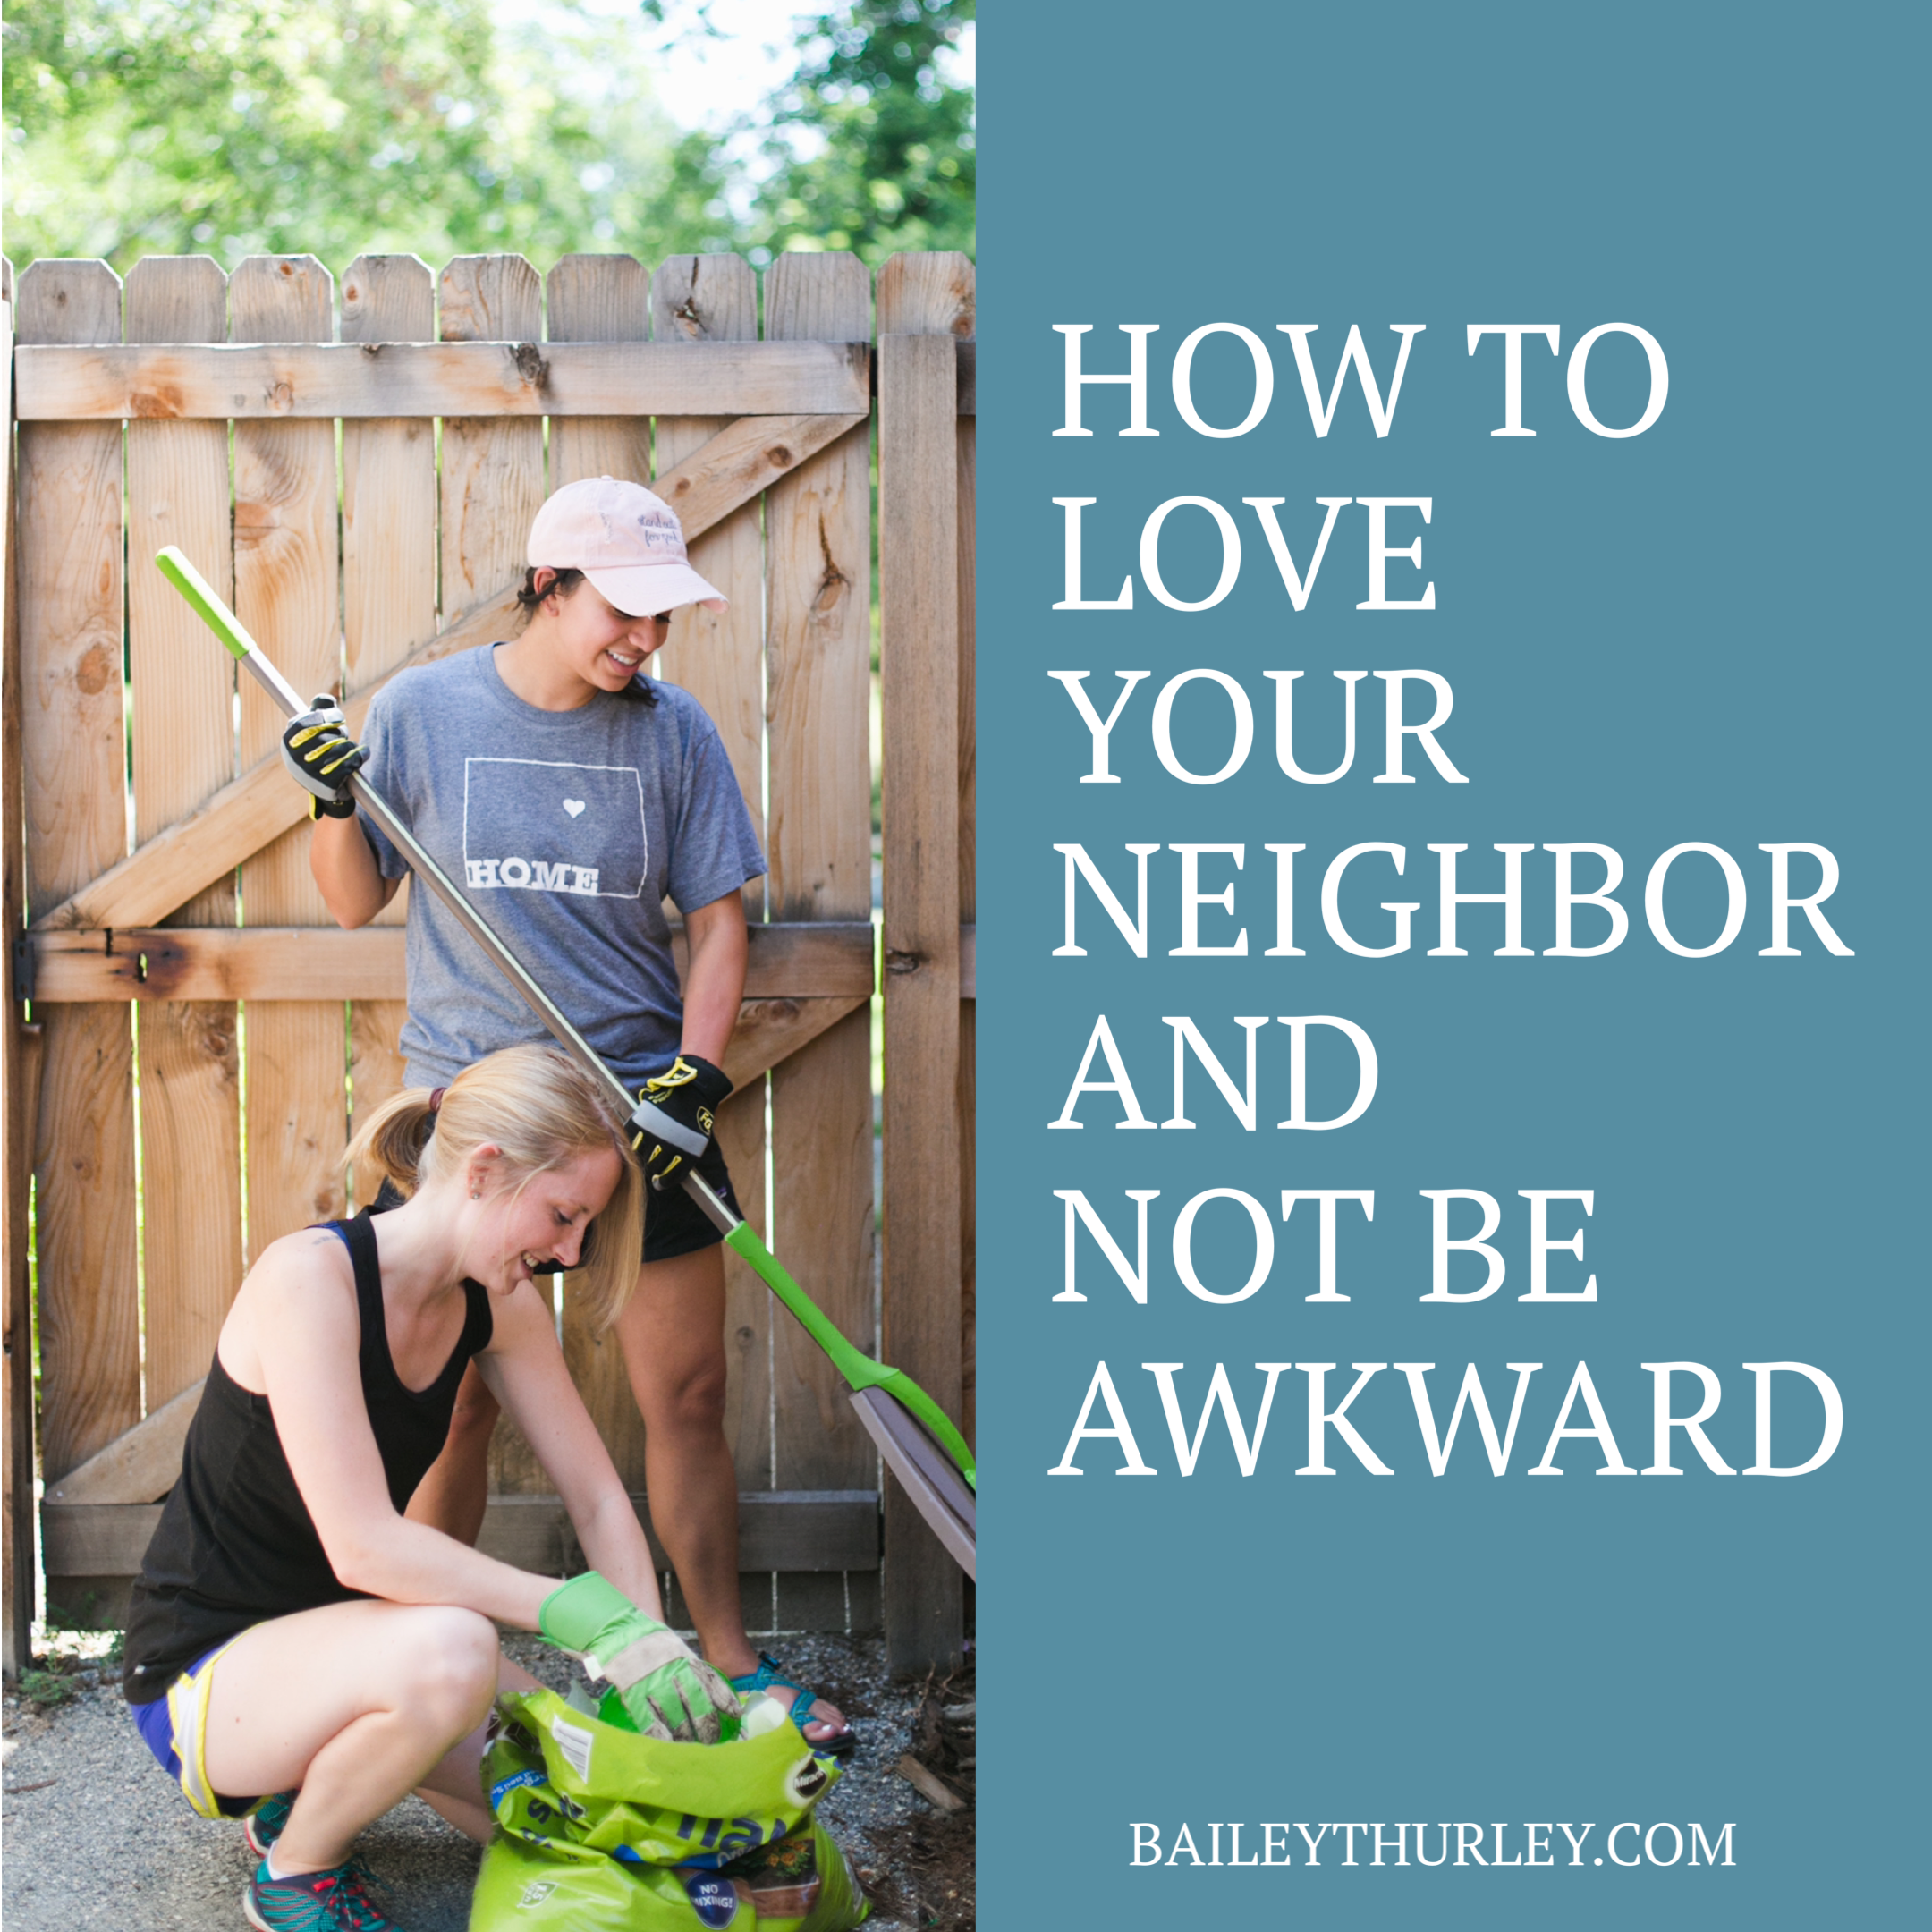 How to love your neighbor and not be awkward